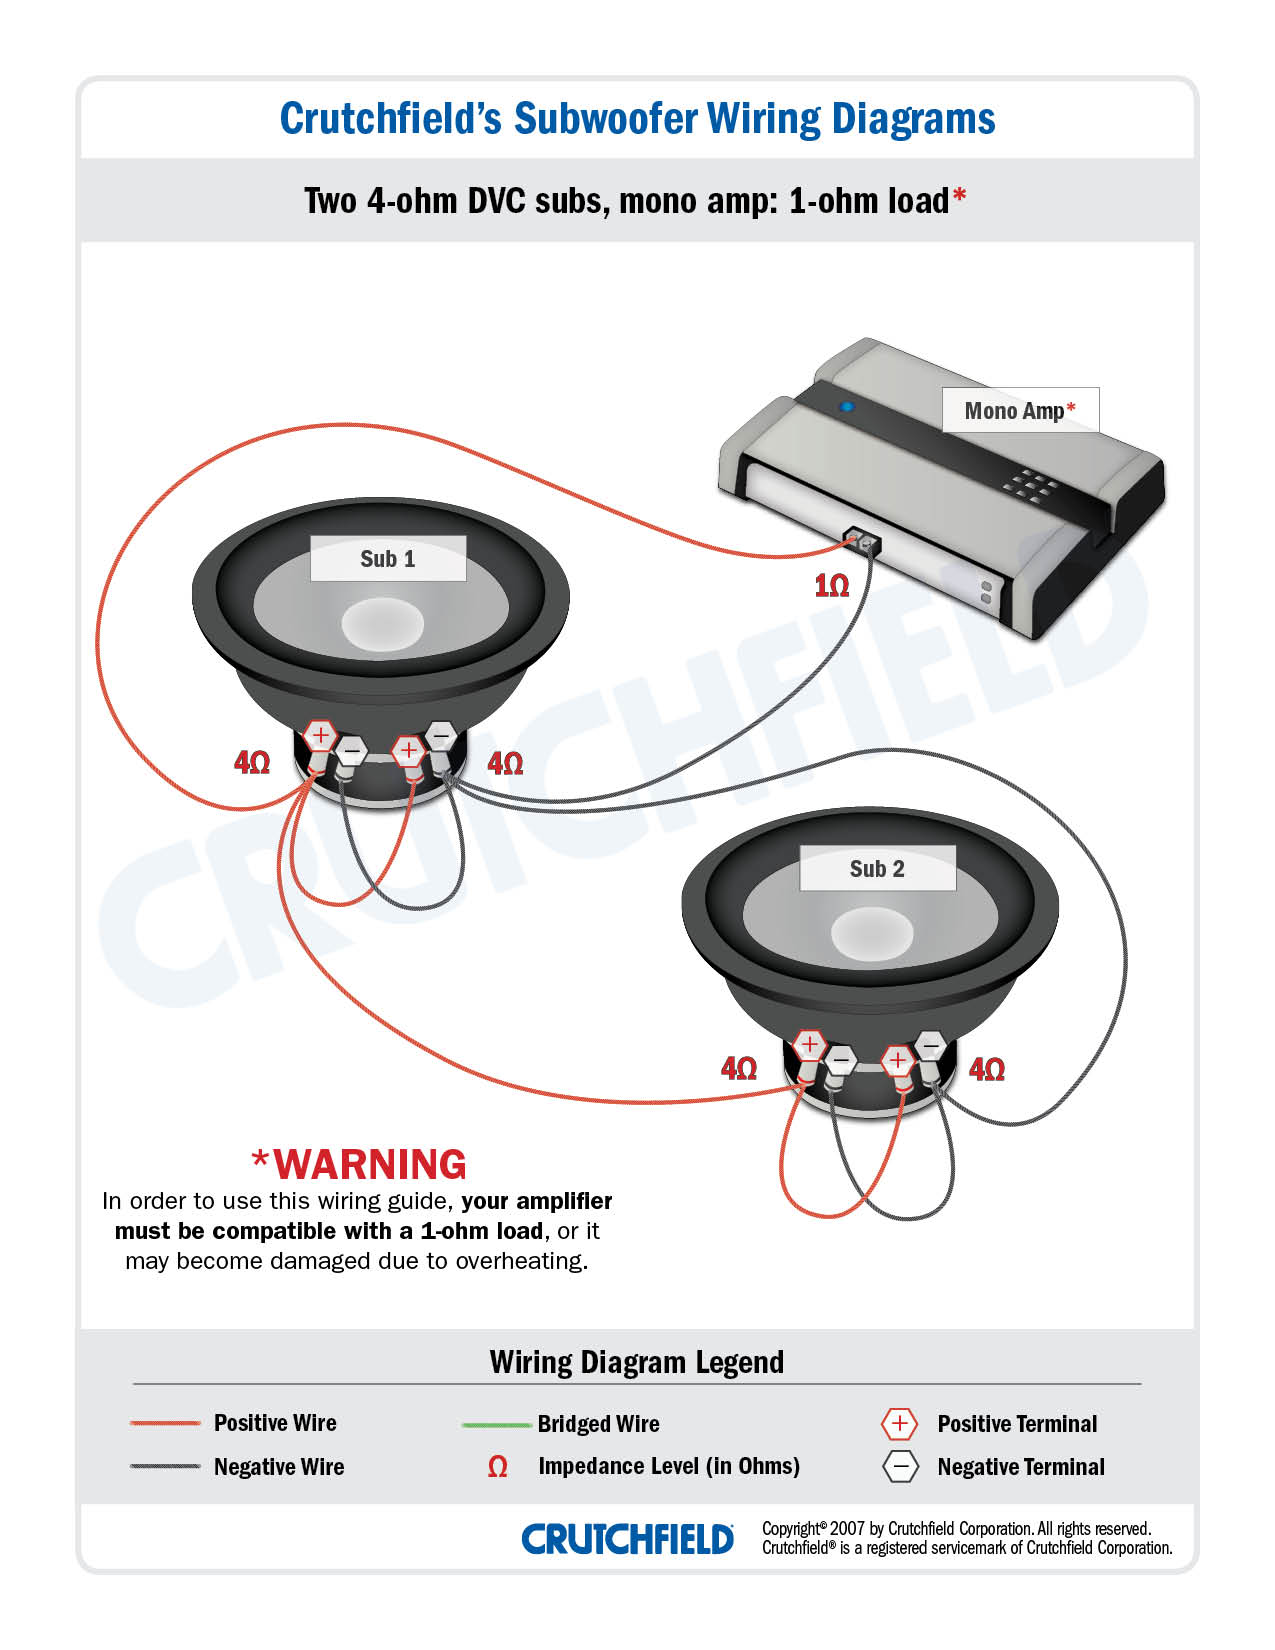 Subwoofer Wiring Diagrams — How to Wire Your Subs on dual voice coil sub wiring-diagram, 2 ohm dvc wiring-diagram, bridge 2 subwoofers wiring-diagram,